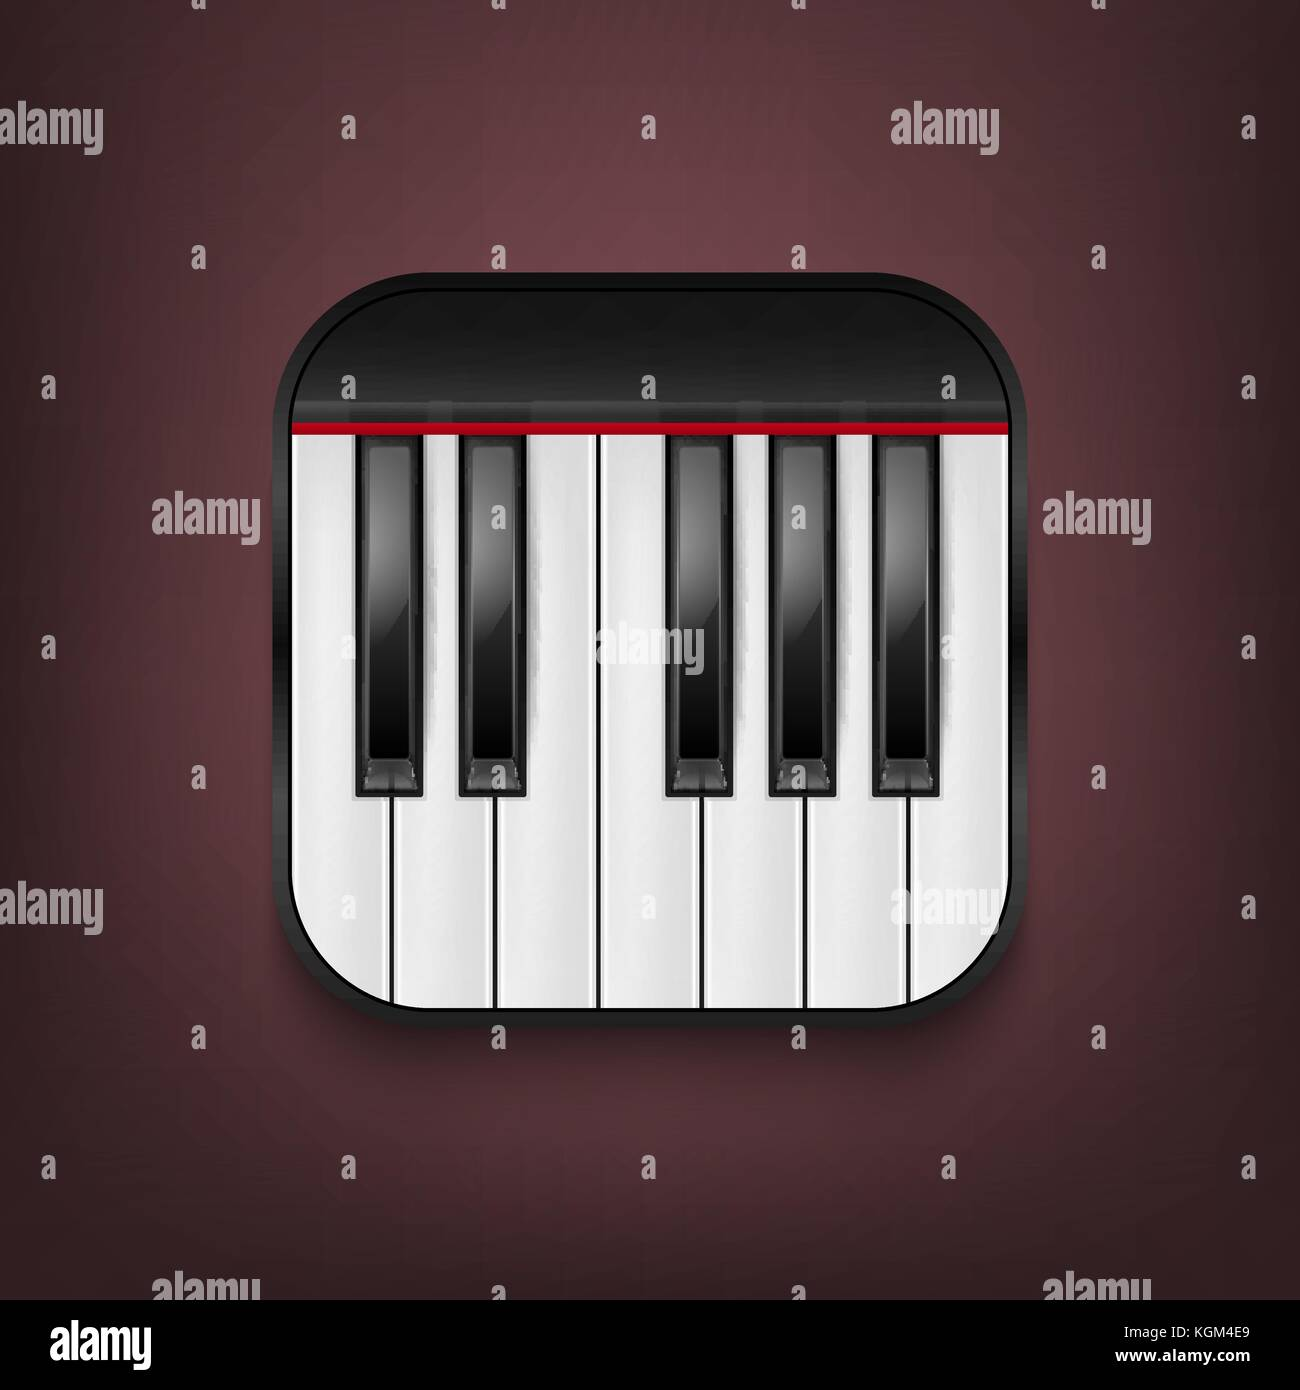 Vector Photorealistic Piano Keyboard Icon Design Template In EPS10